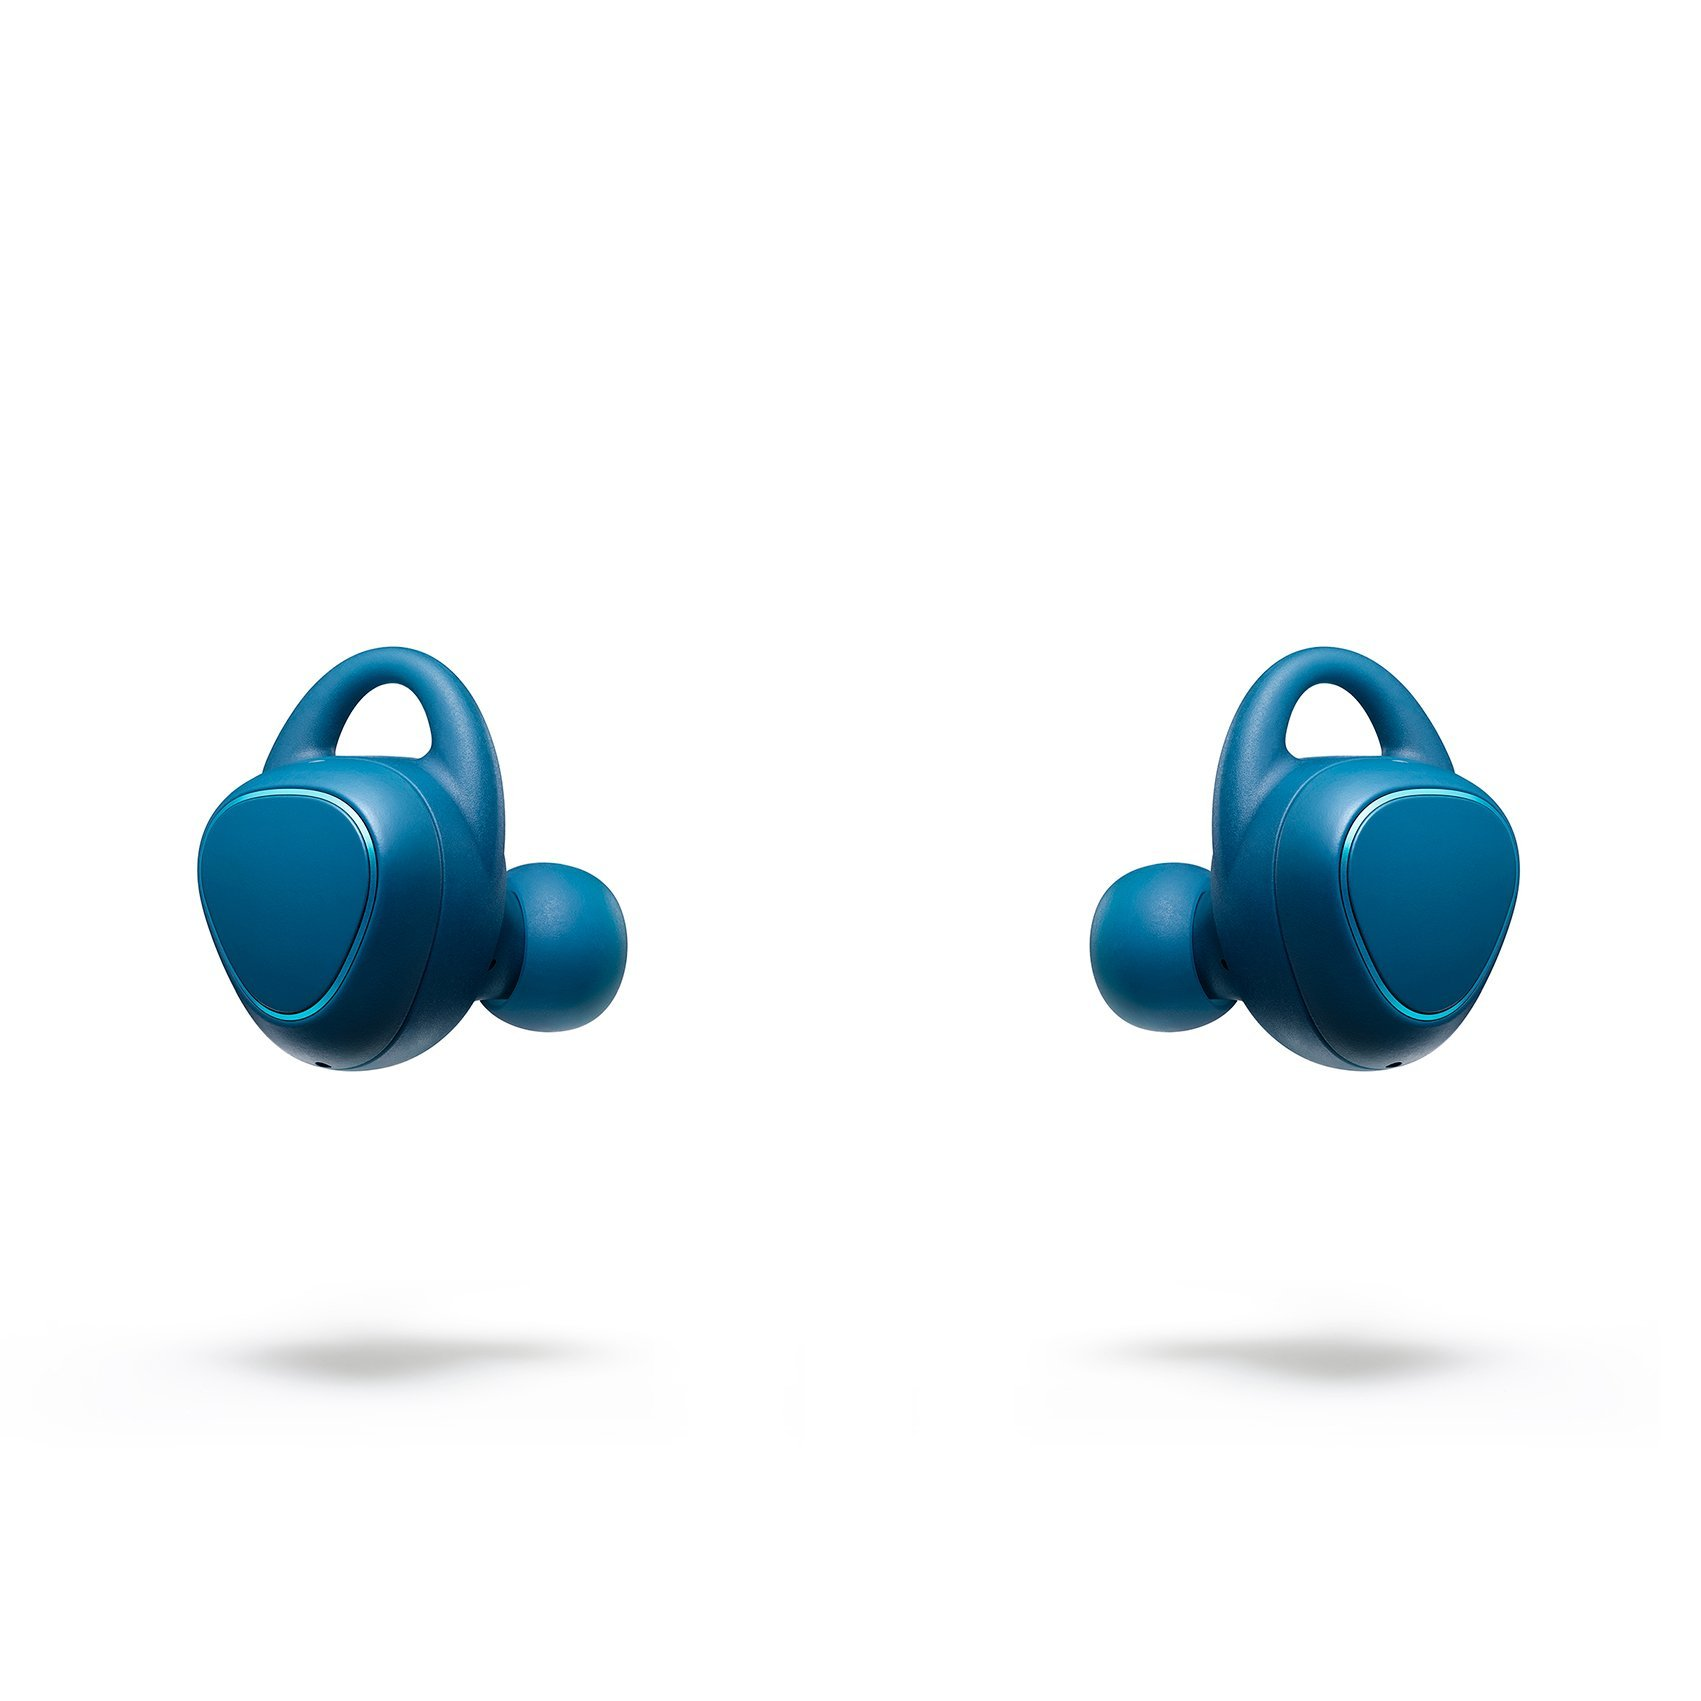 Samsung Gear IconX 2016 Cordfree Fitness Earbuds with Activity Tracker - Blue - Discontinued by Manufacturer